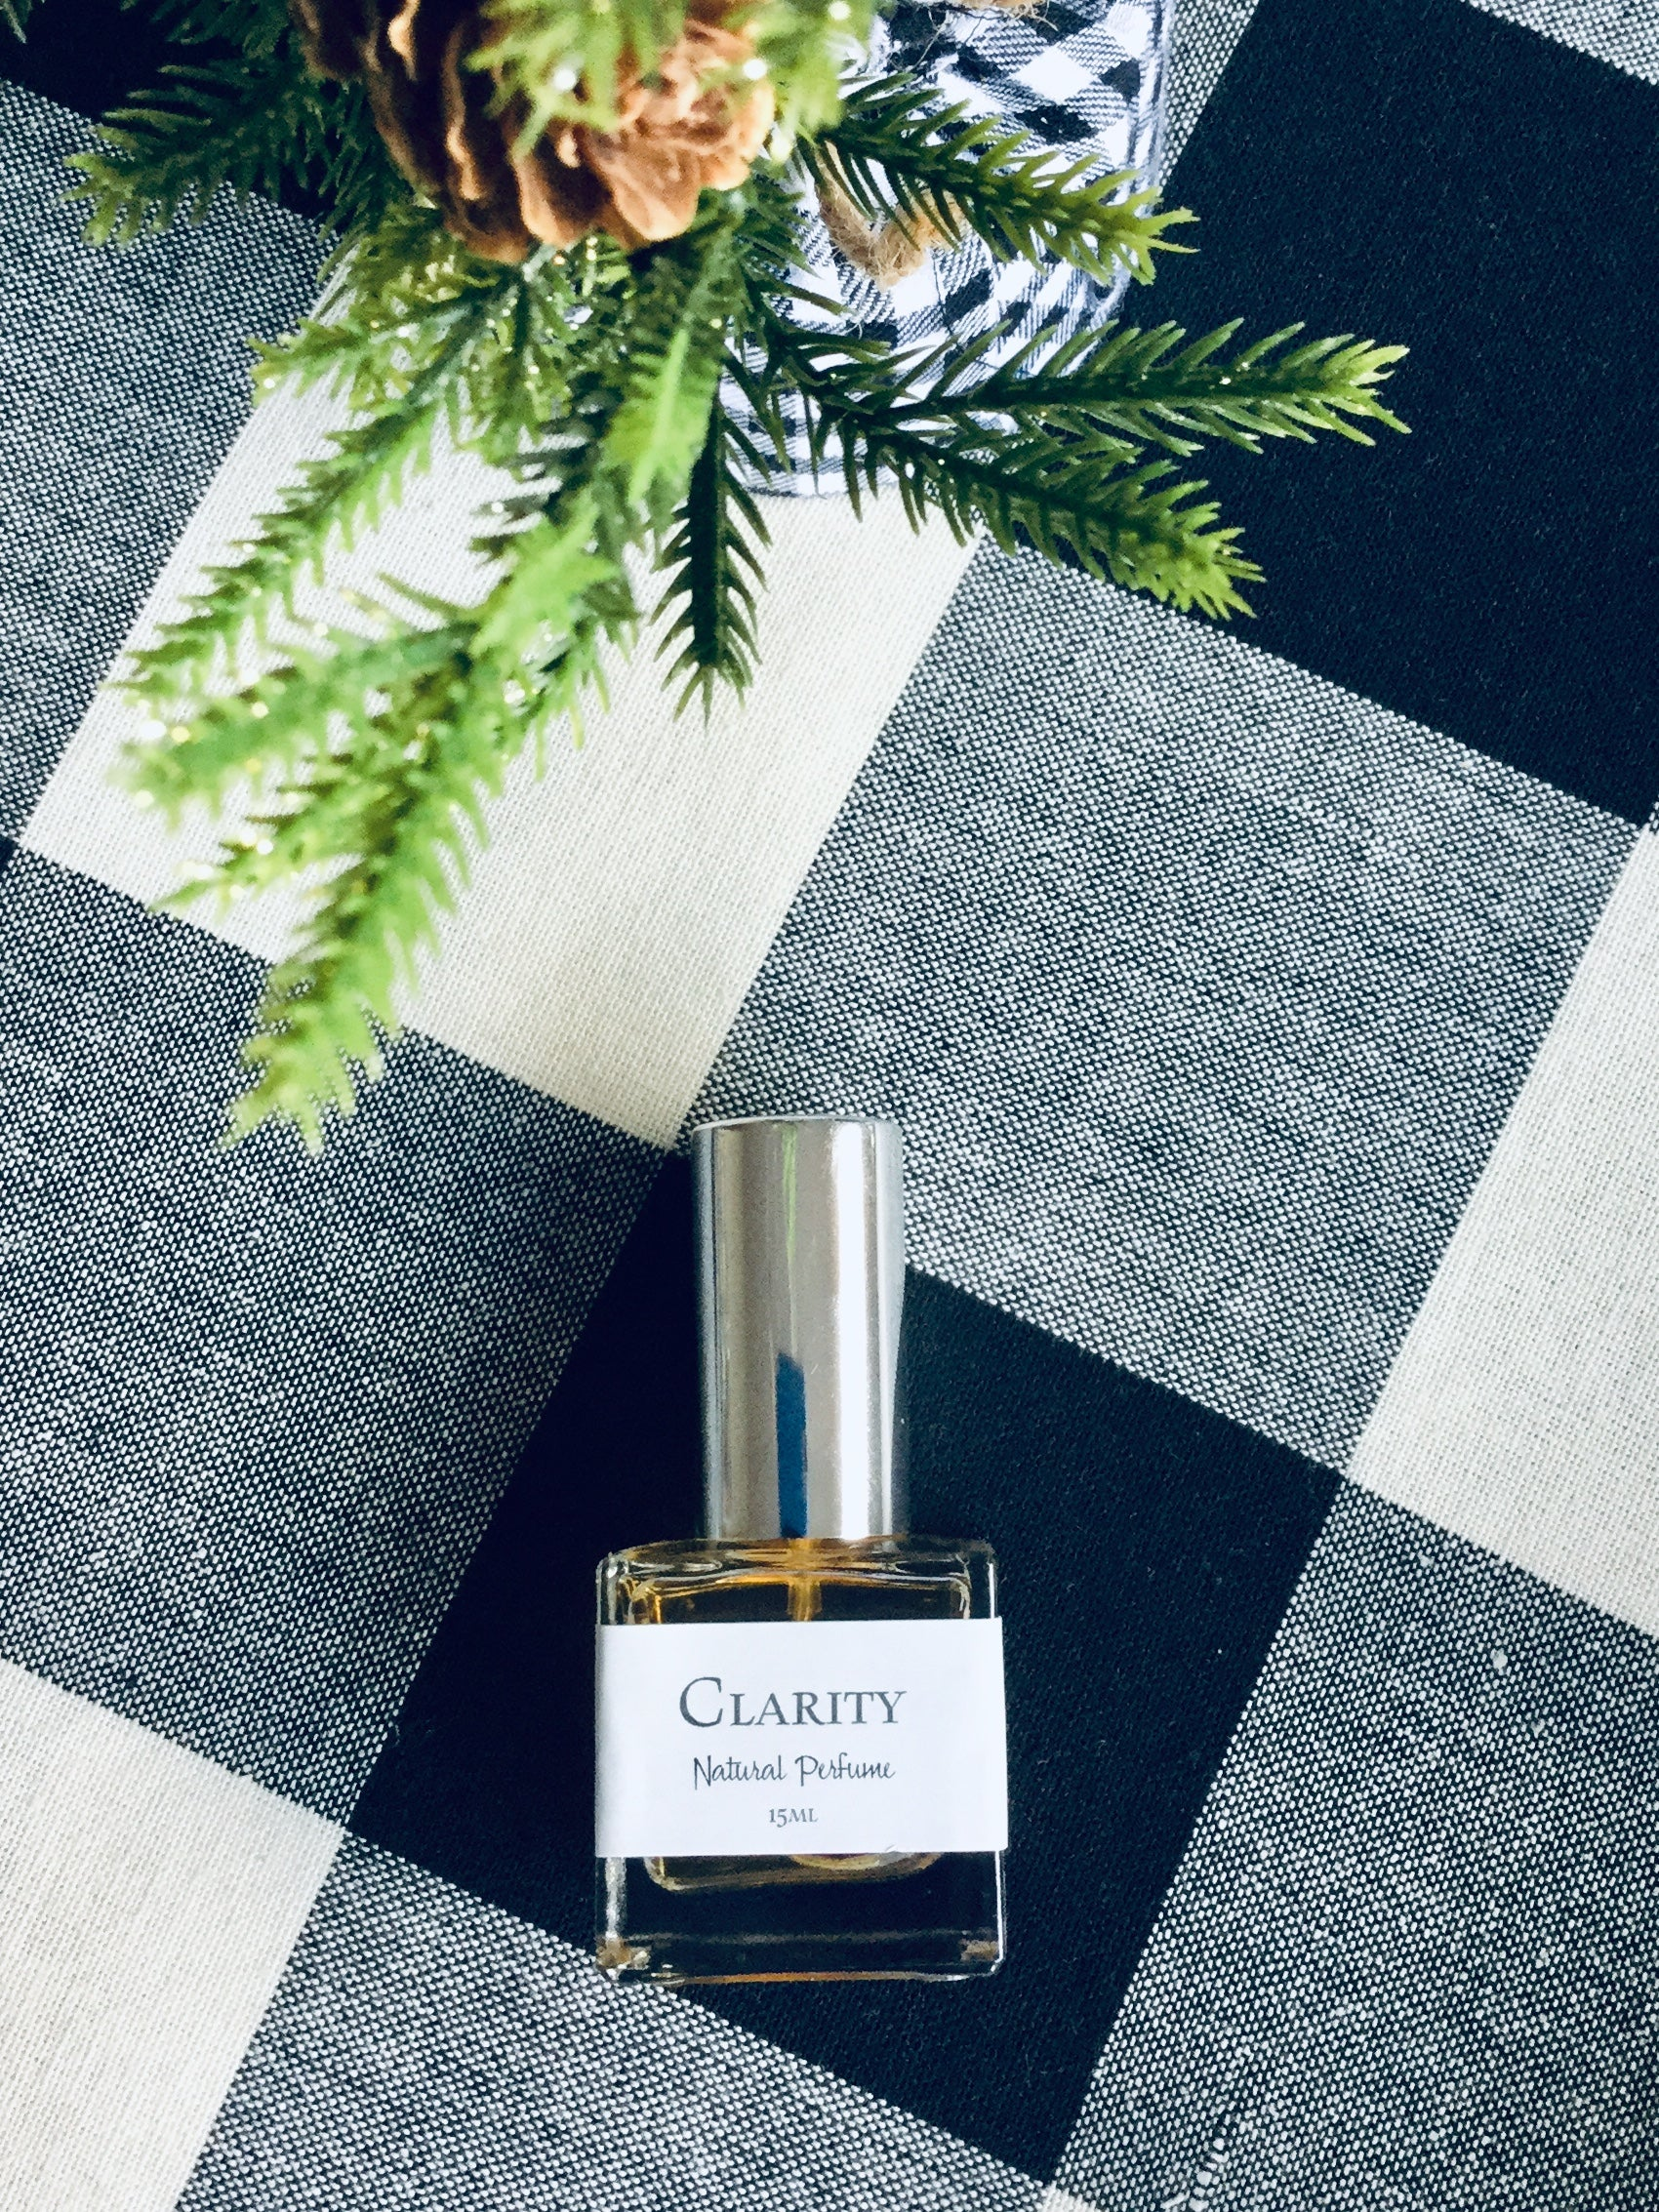 Clarity - A Natural Perfume